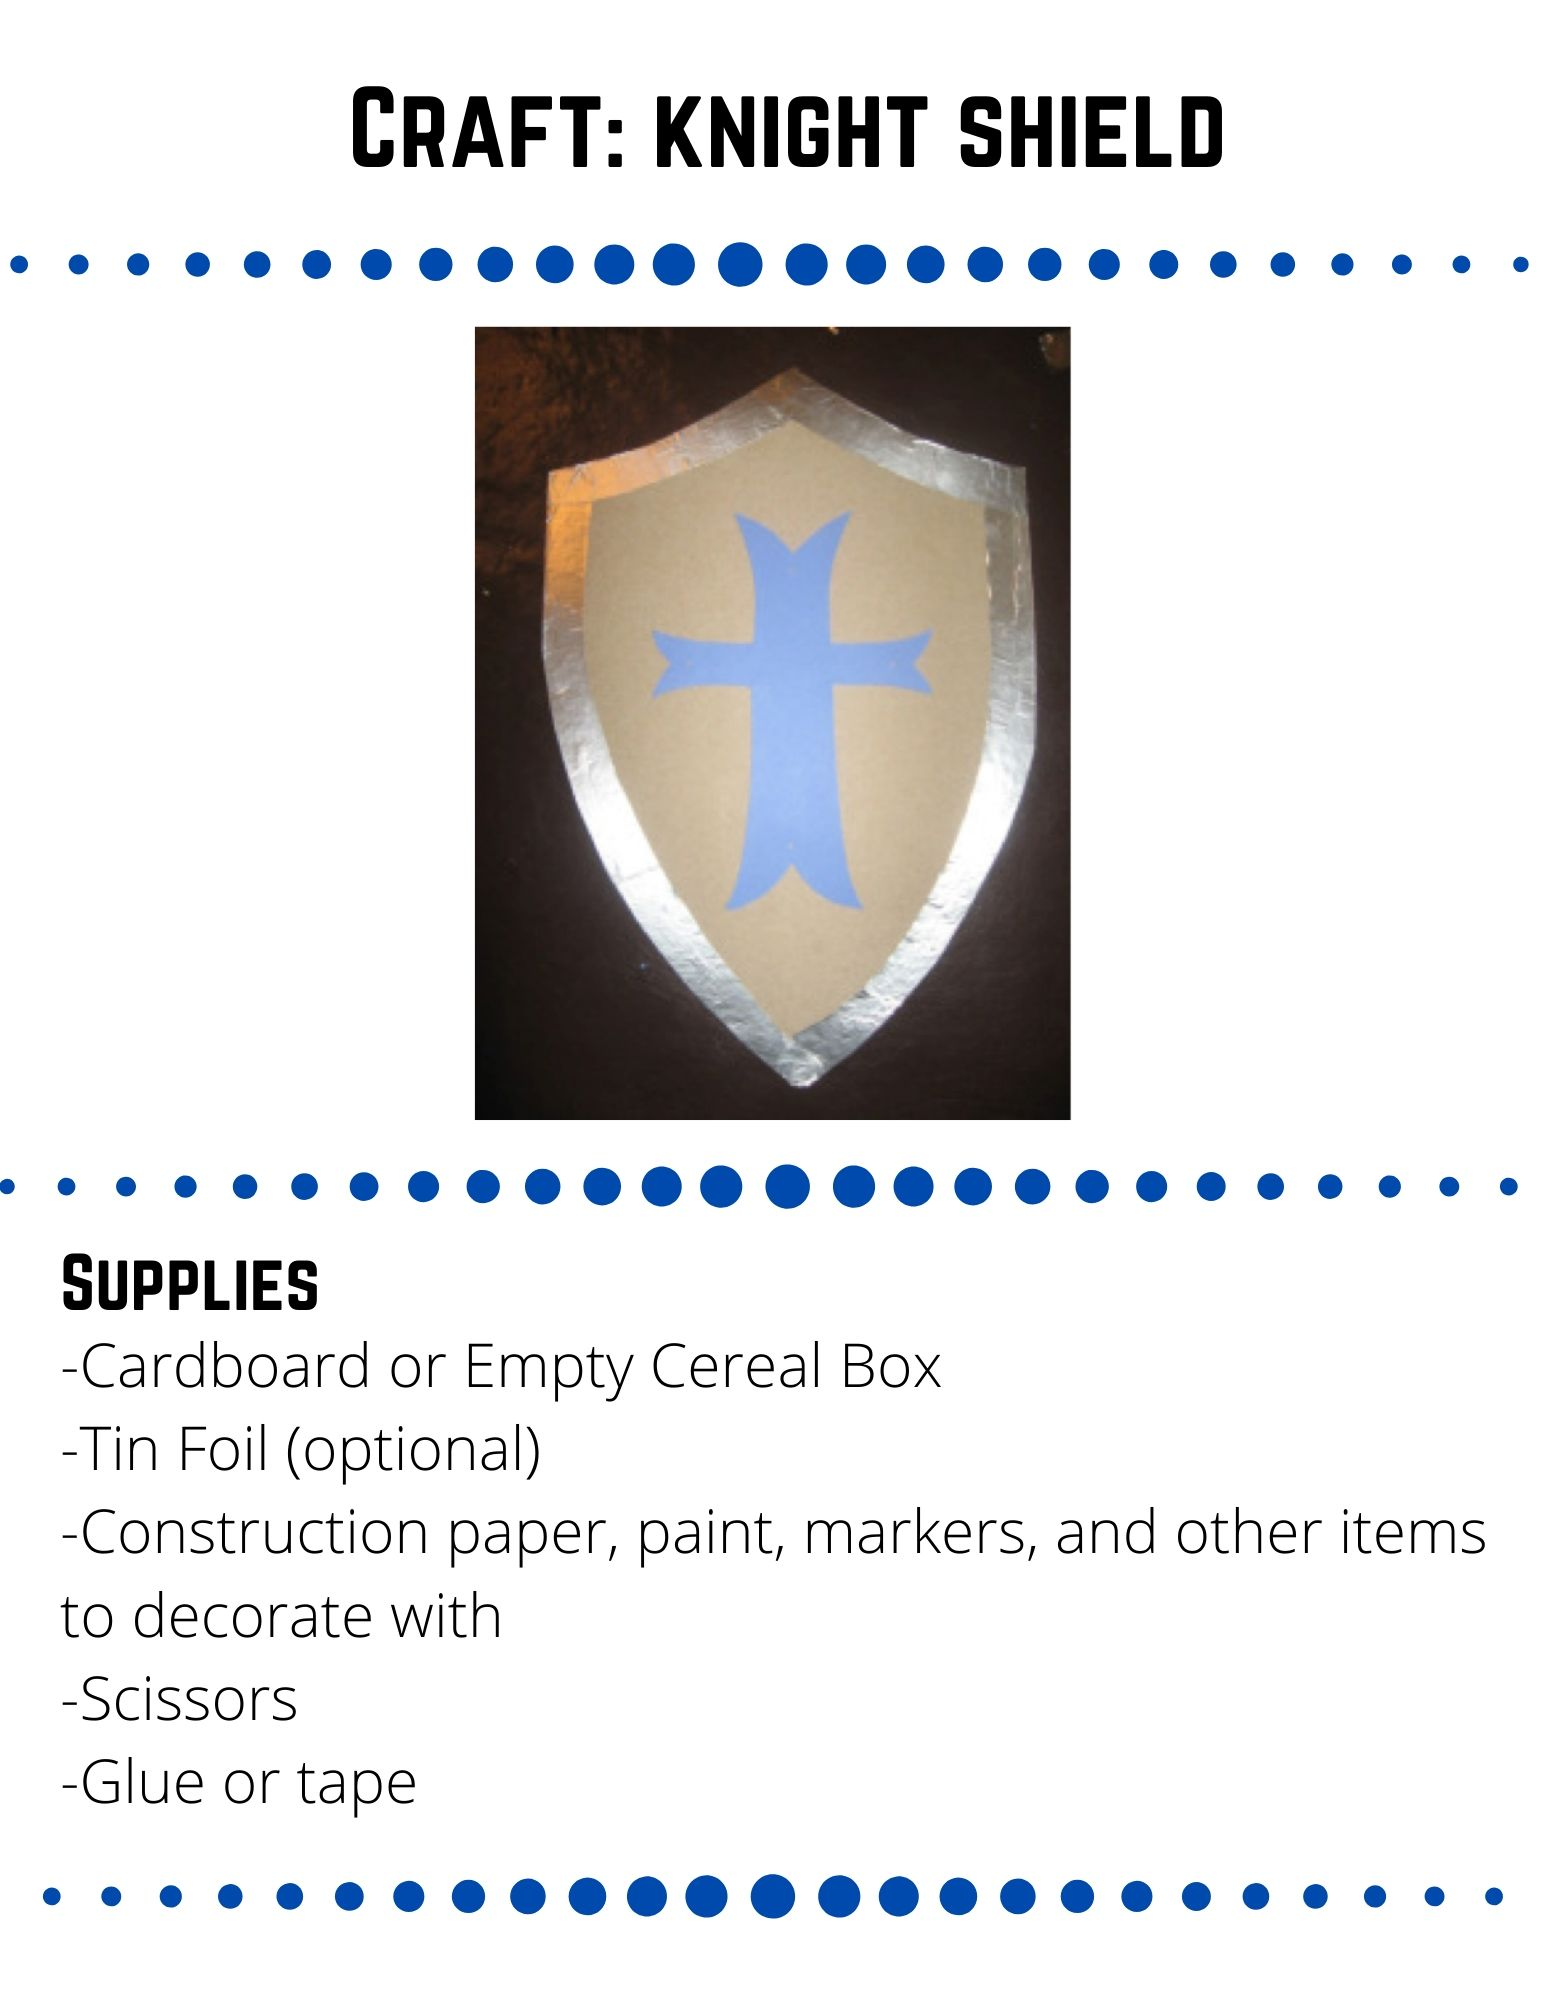 Craft: knight shield-Cardboard or Empty Cereal Box -Tin Foil (optional) -Construction paper, paint, markers, and other items to decorate with -Scissors -Glue or tape.  Draw the shape of a shield onto something study you can cut, like cardboard or a cereal box. Cut out the cardboard shape.   Optional: Put Tin Foil around the edge of the shield and secure it with glue.  Decorate your shield using construction paper, markers, paint, or anything else you can find.  To attach a handle to the back of the shield, use a strip of leftover cardboard or cereal box.  Attach the handle with tape or glue.